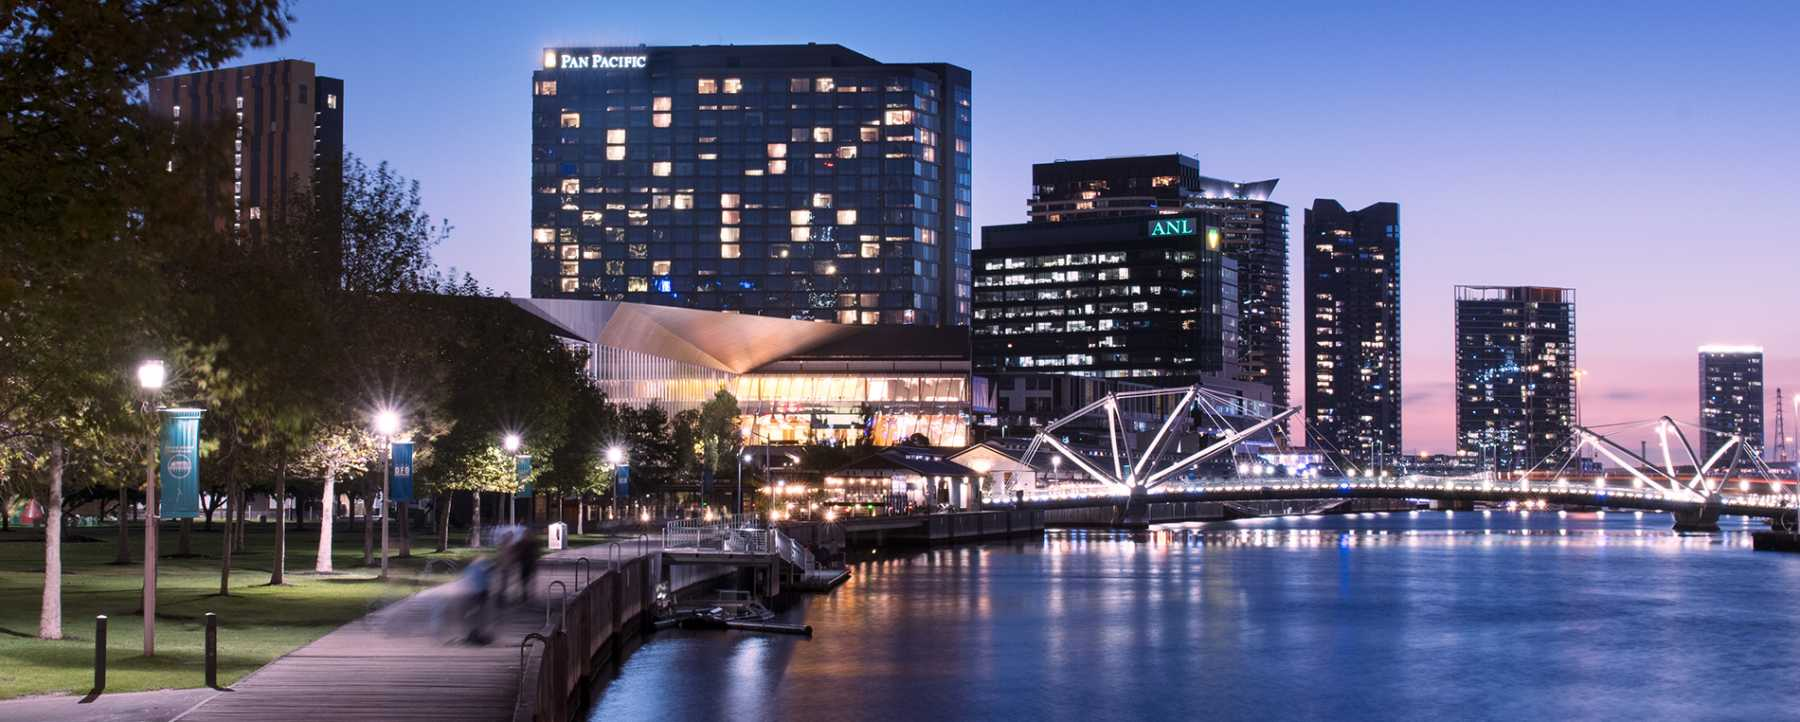 Exterior with Yarra River